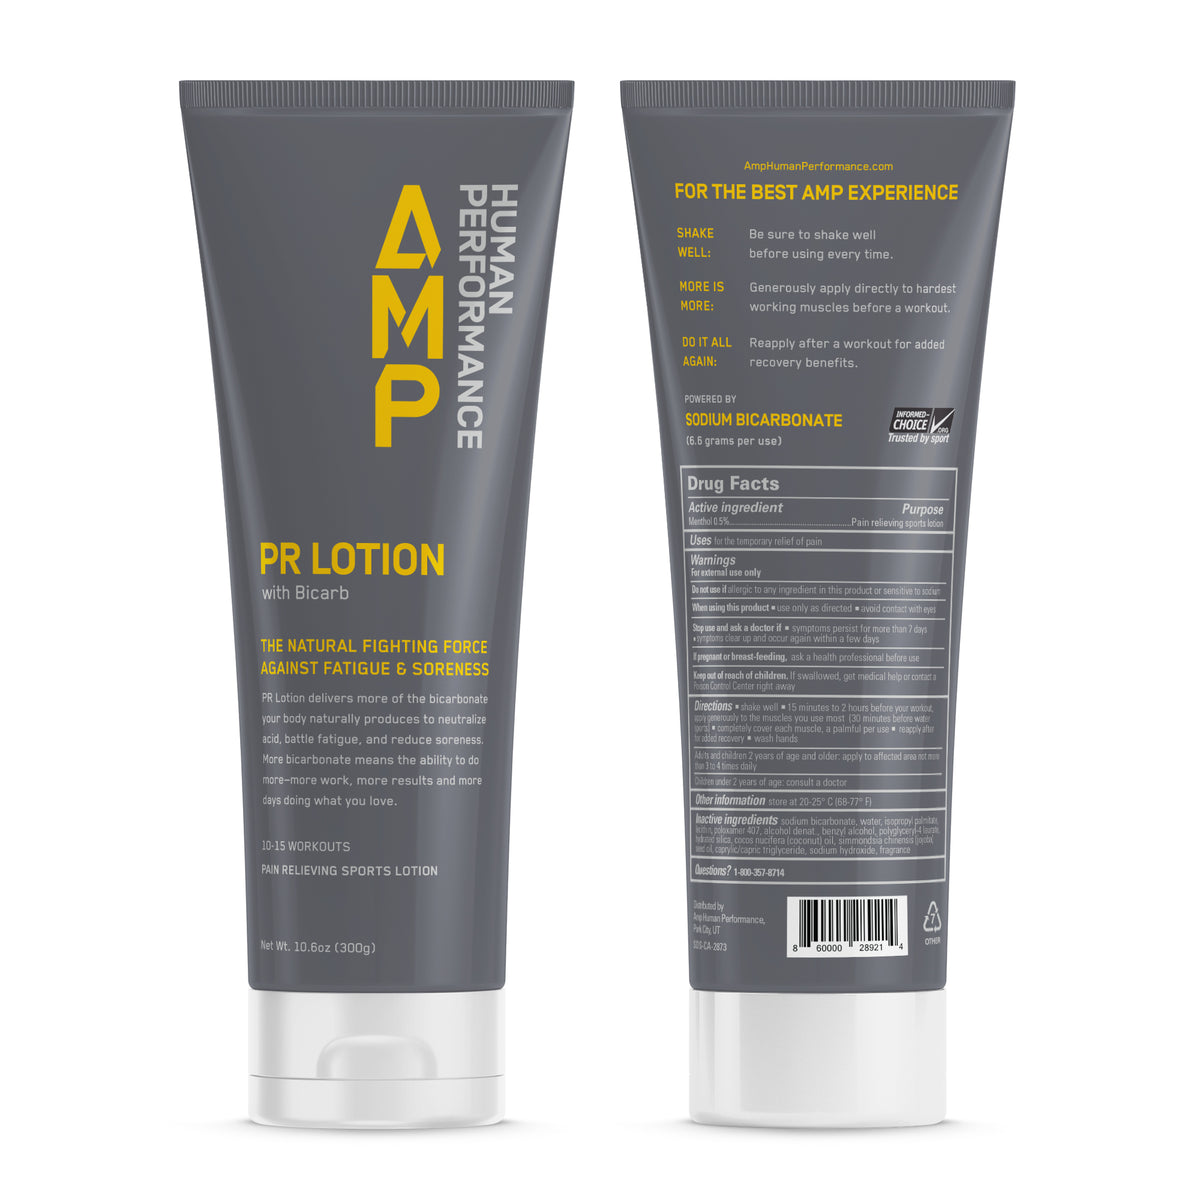 PR Lotion Packages